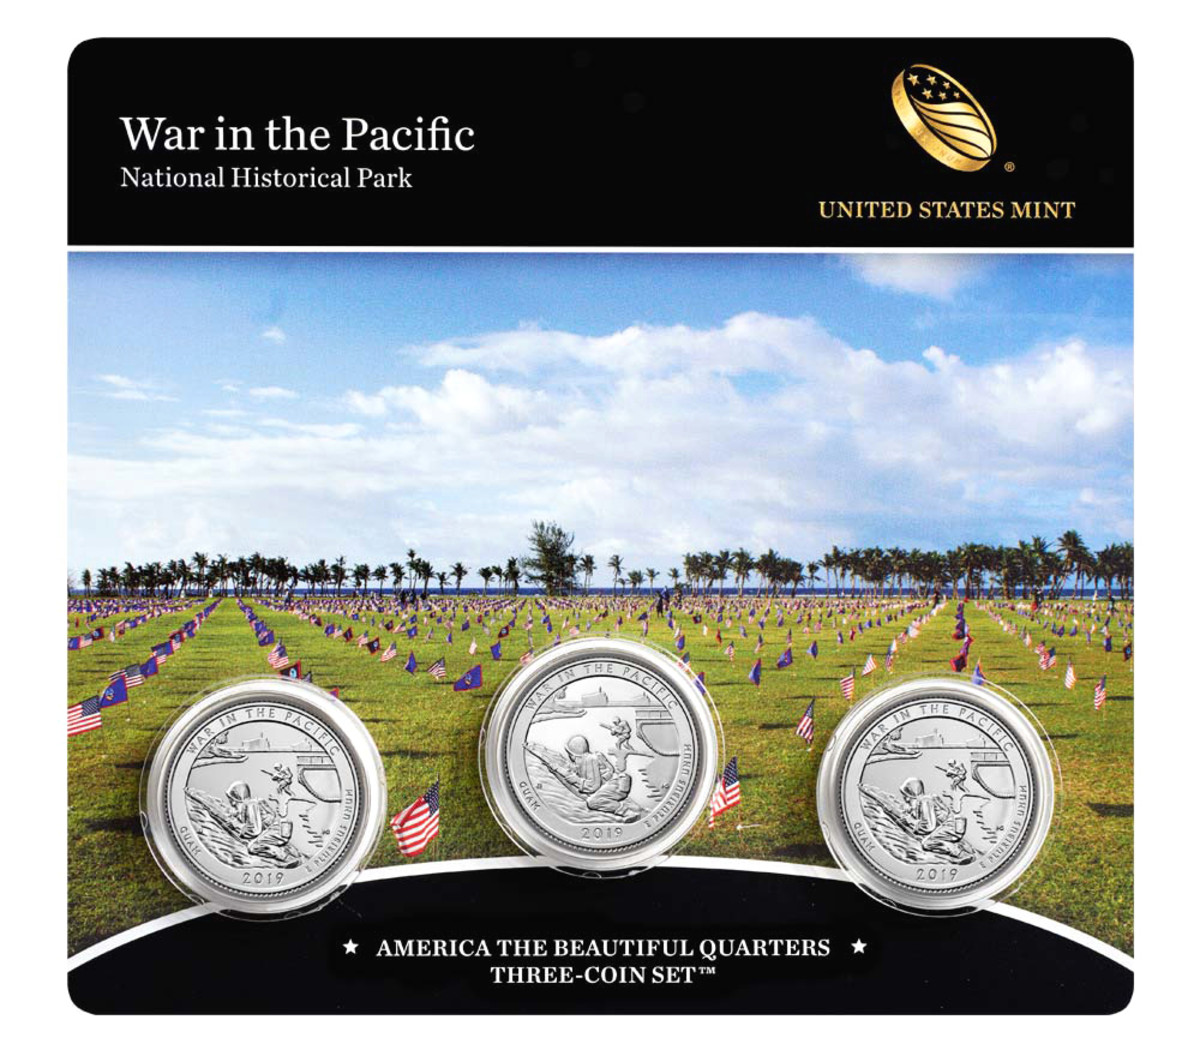 Each of the War in the Pacific National Historical Park Quarter Sets include two uncirculated quarters – one from Denver and one from Philadelphia, as well as a proof quarter from the San Francisco Mint.